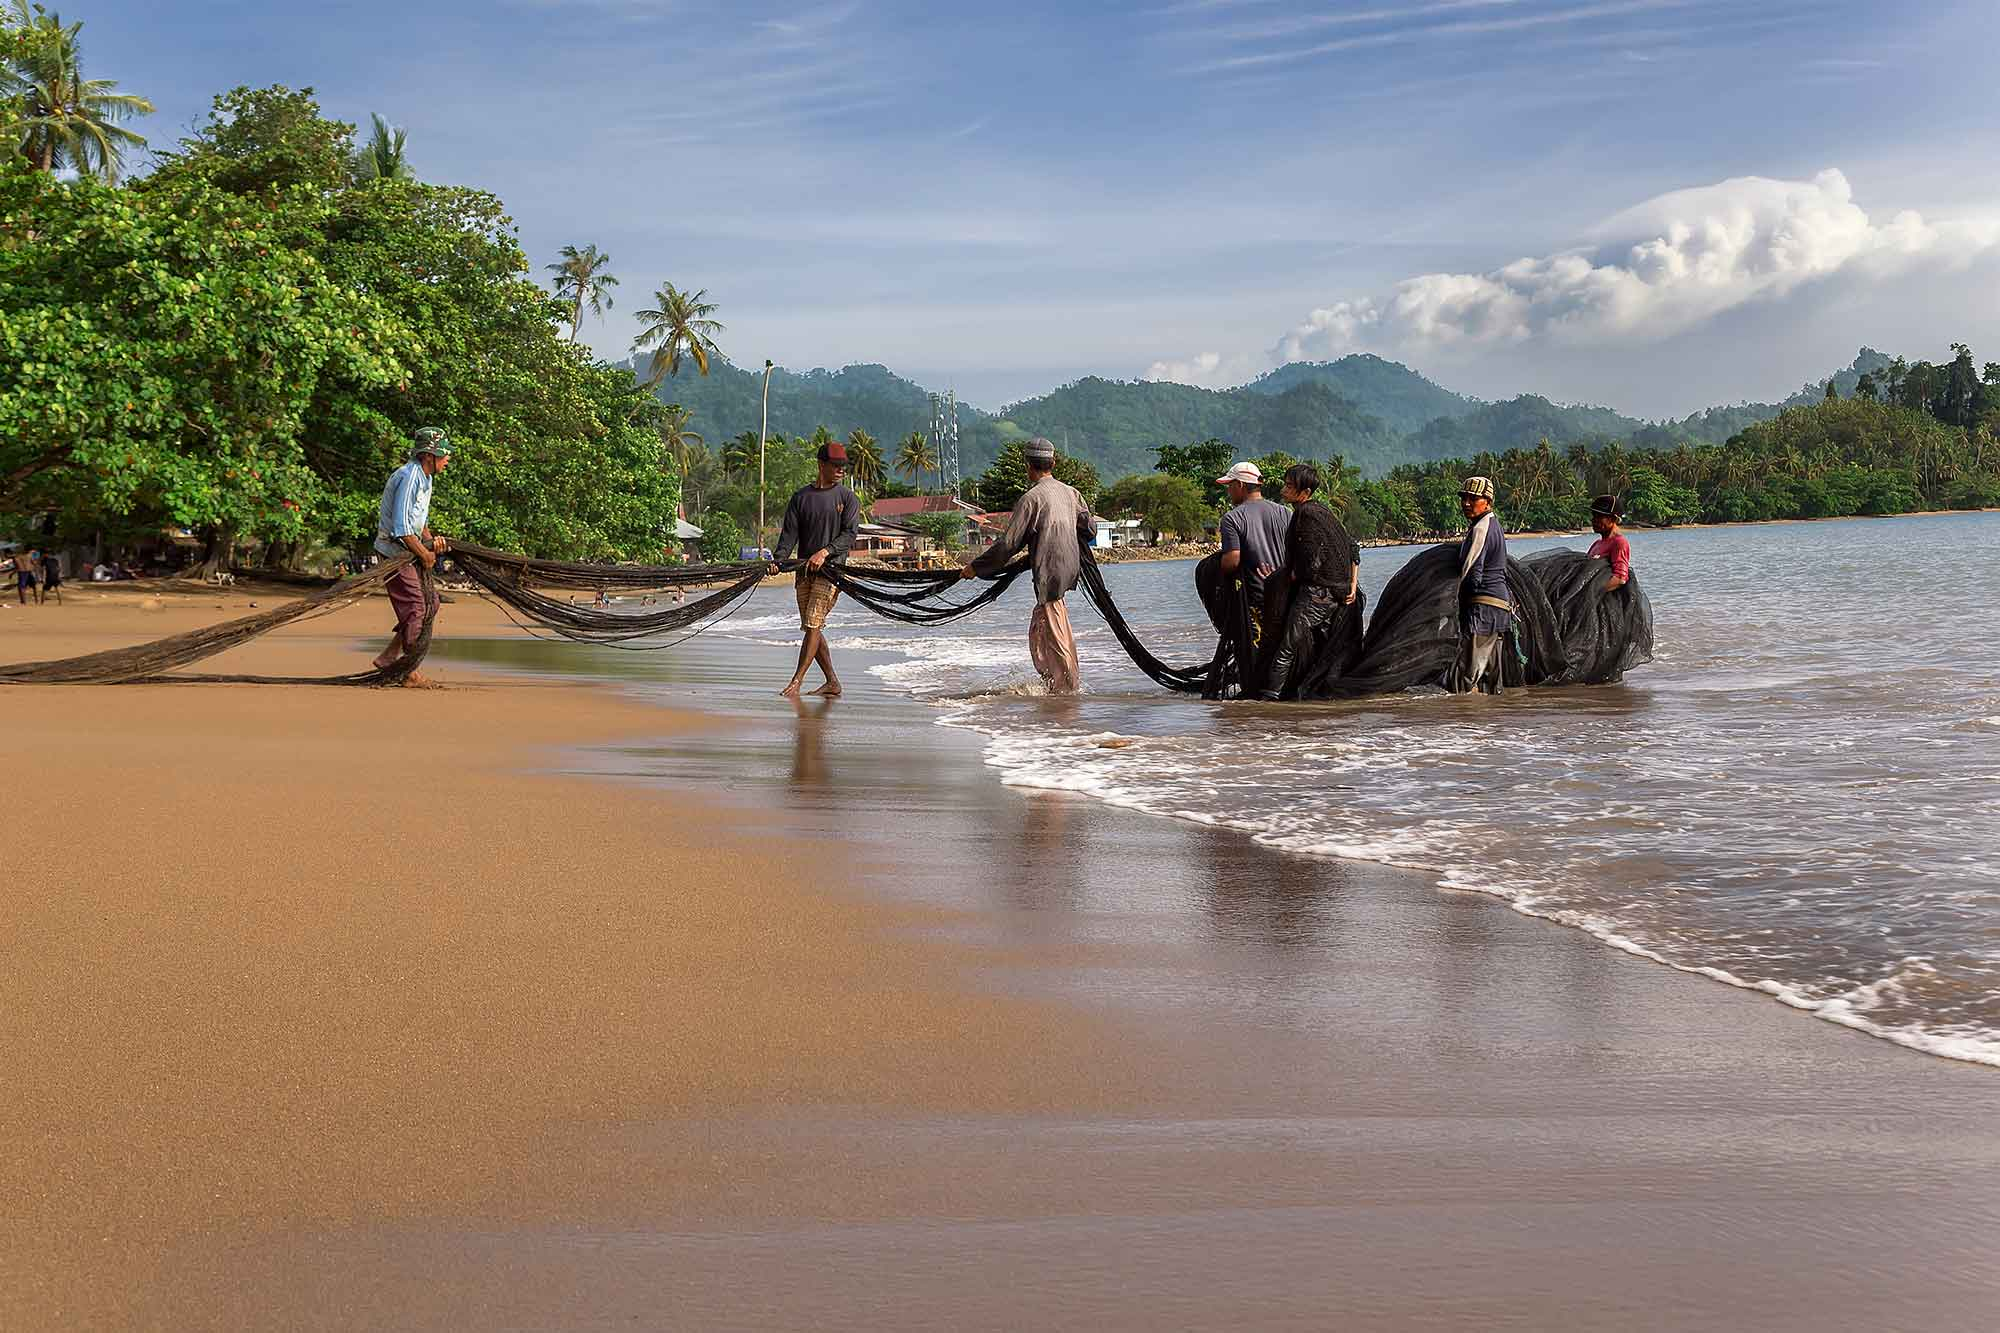 Fishermen pulling in the net on Bungus beach in West Sumatra, Indonesia. © Ulli Maier & Nisa Maier